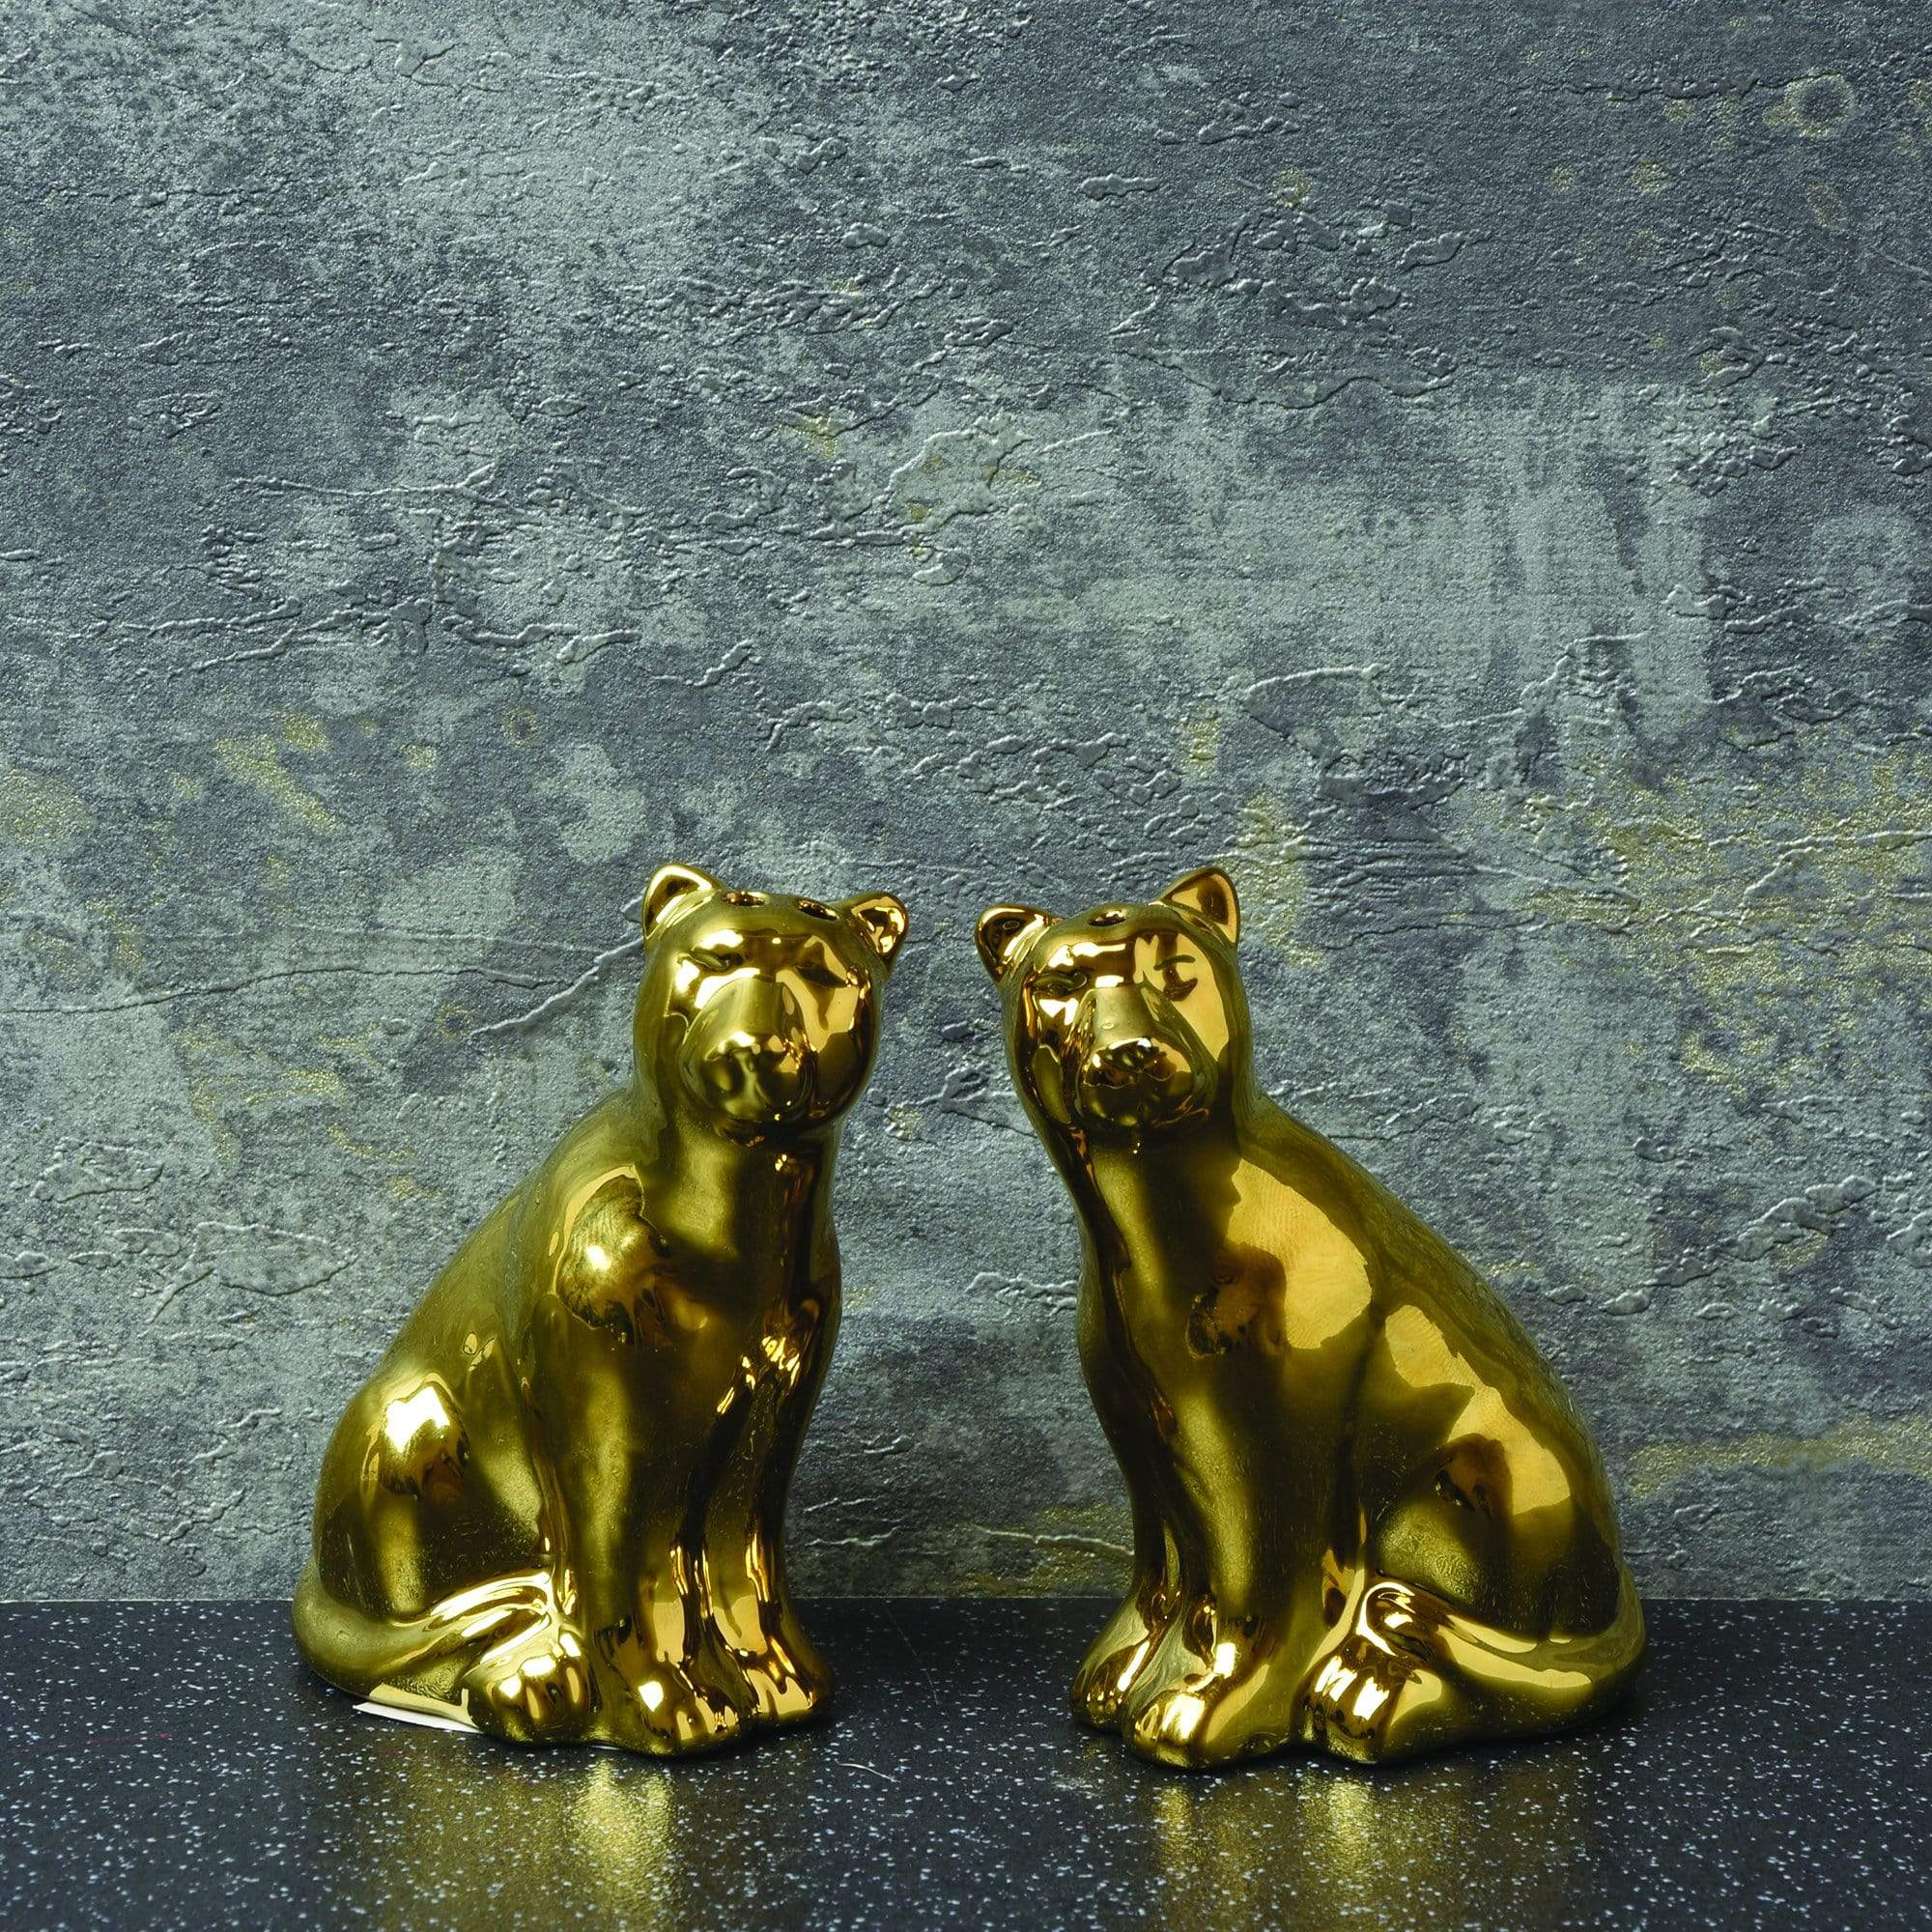 Candlelight Home Salt & Pepper Shaker Leopard Salt & Pepper Shakers Gold 8cm 6PK